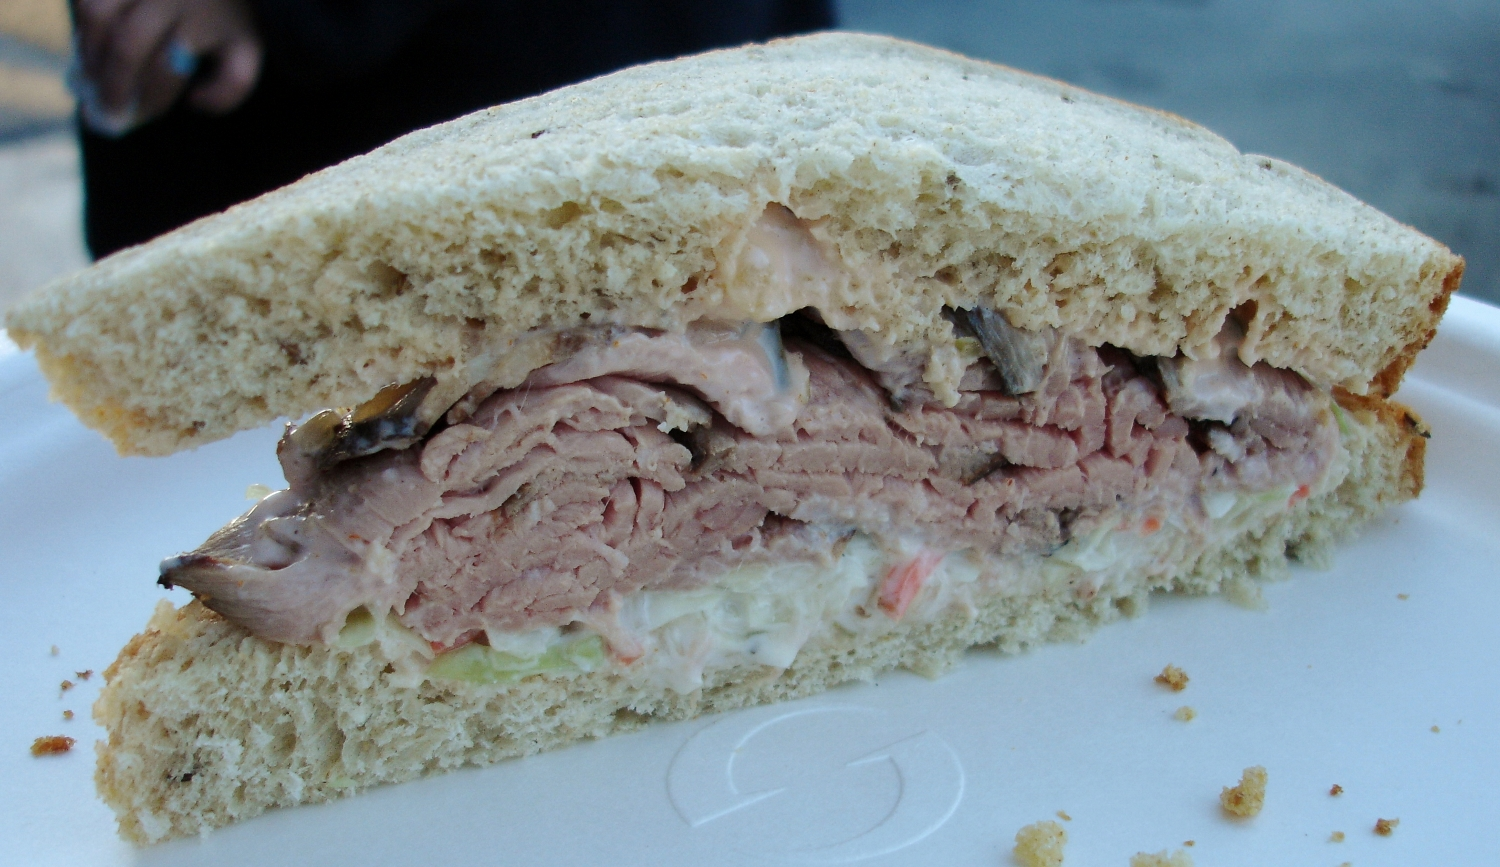 Have a sandwich made for you at the deli counter. This one features roast beef, cole slaw,and  Russian dressing on multi-grain bread.